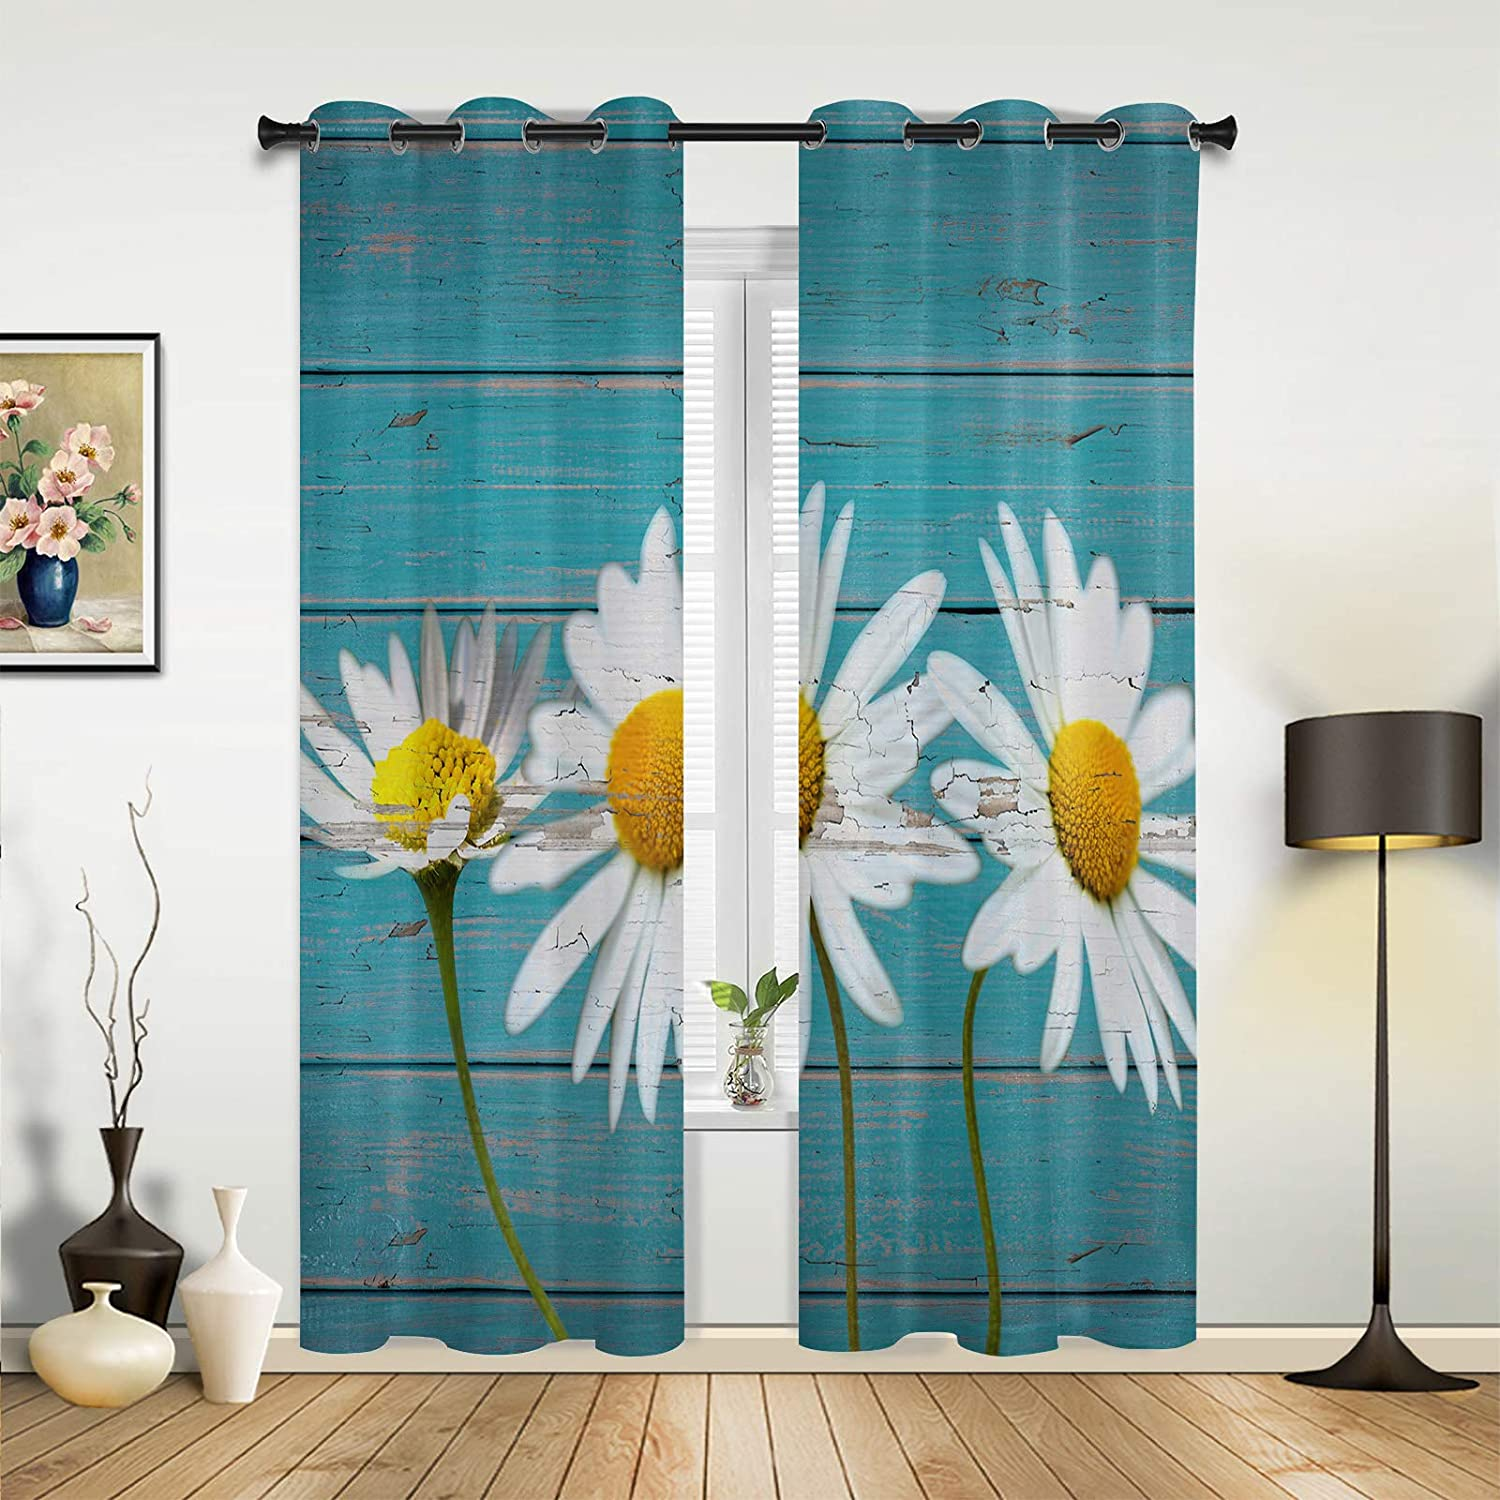 Window Selling and selling Sheer Curtains for Bedroom Fresh Daisy Room Recommended Living Flower